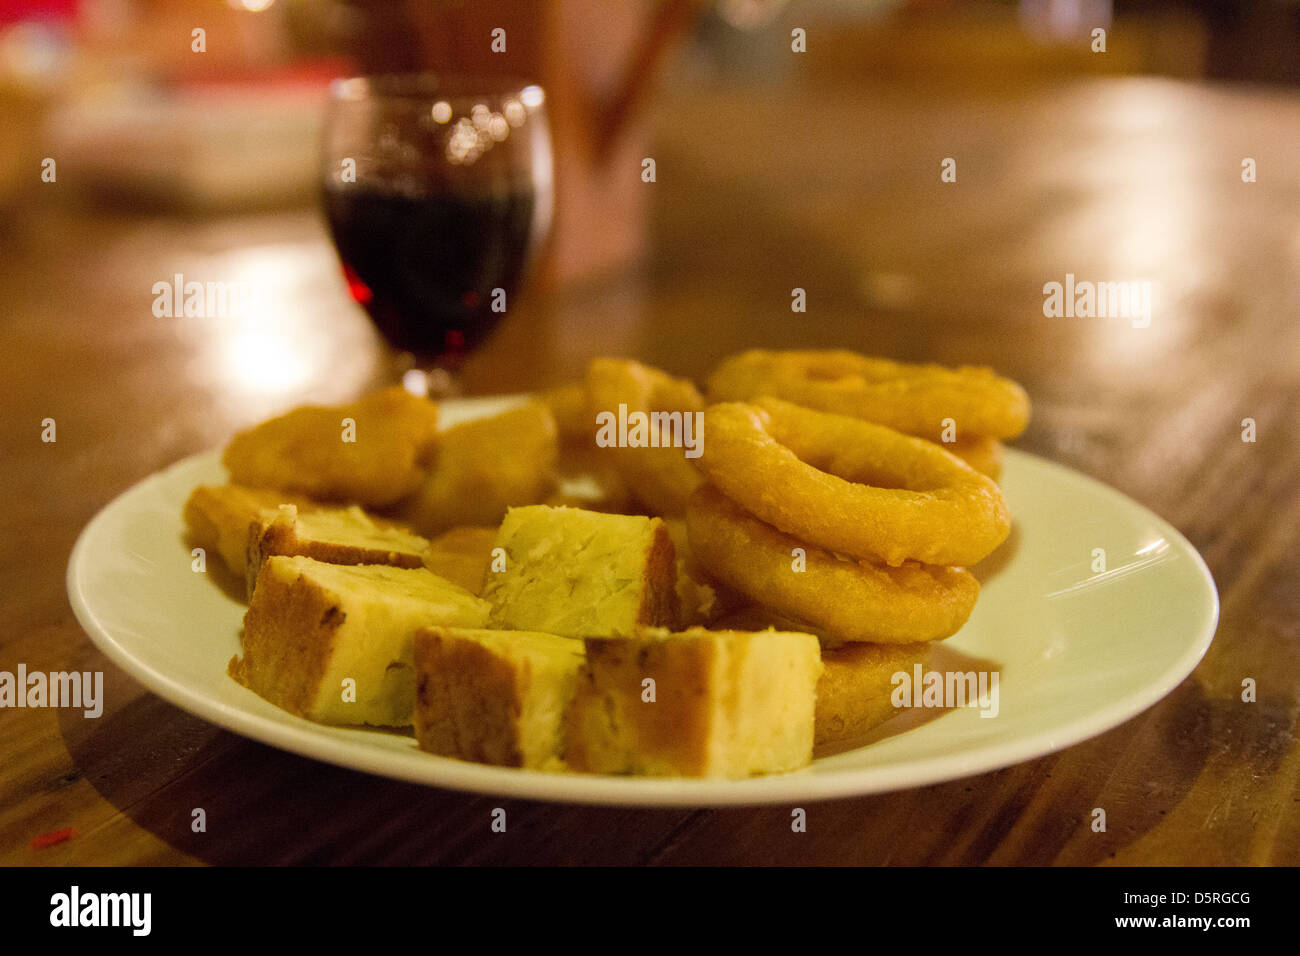 Tapas and a glass of red wine - Stock Image